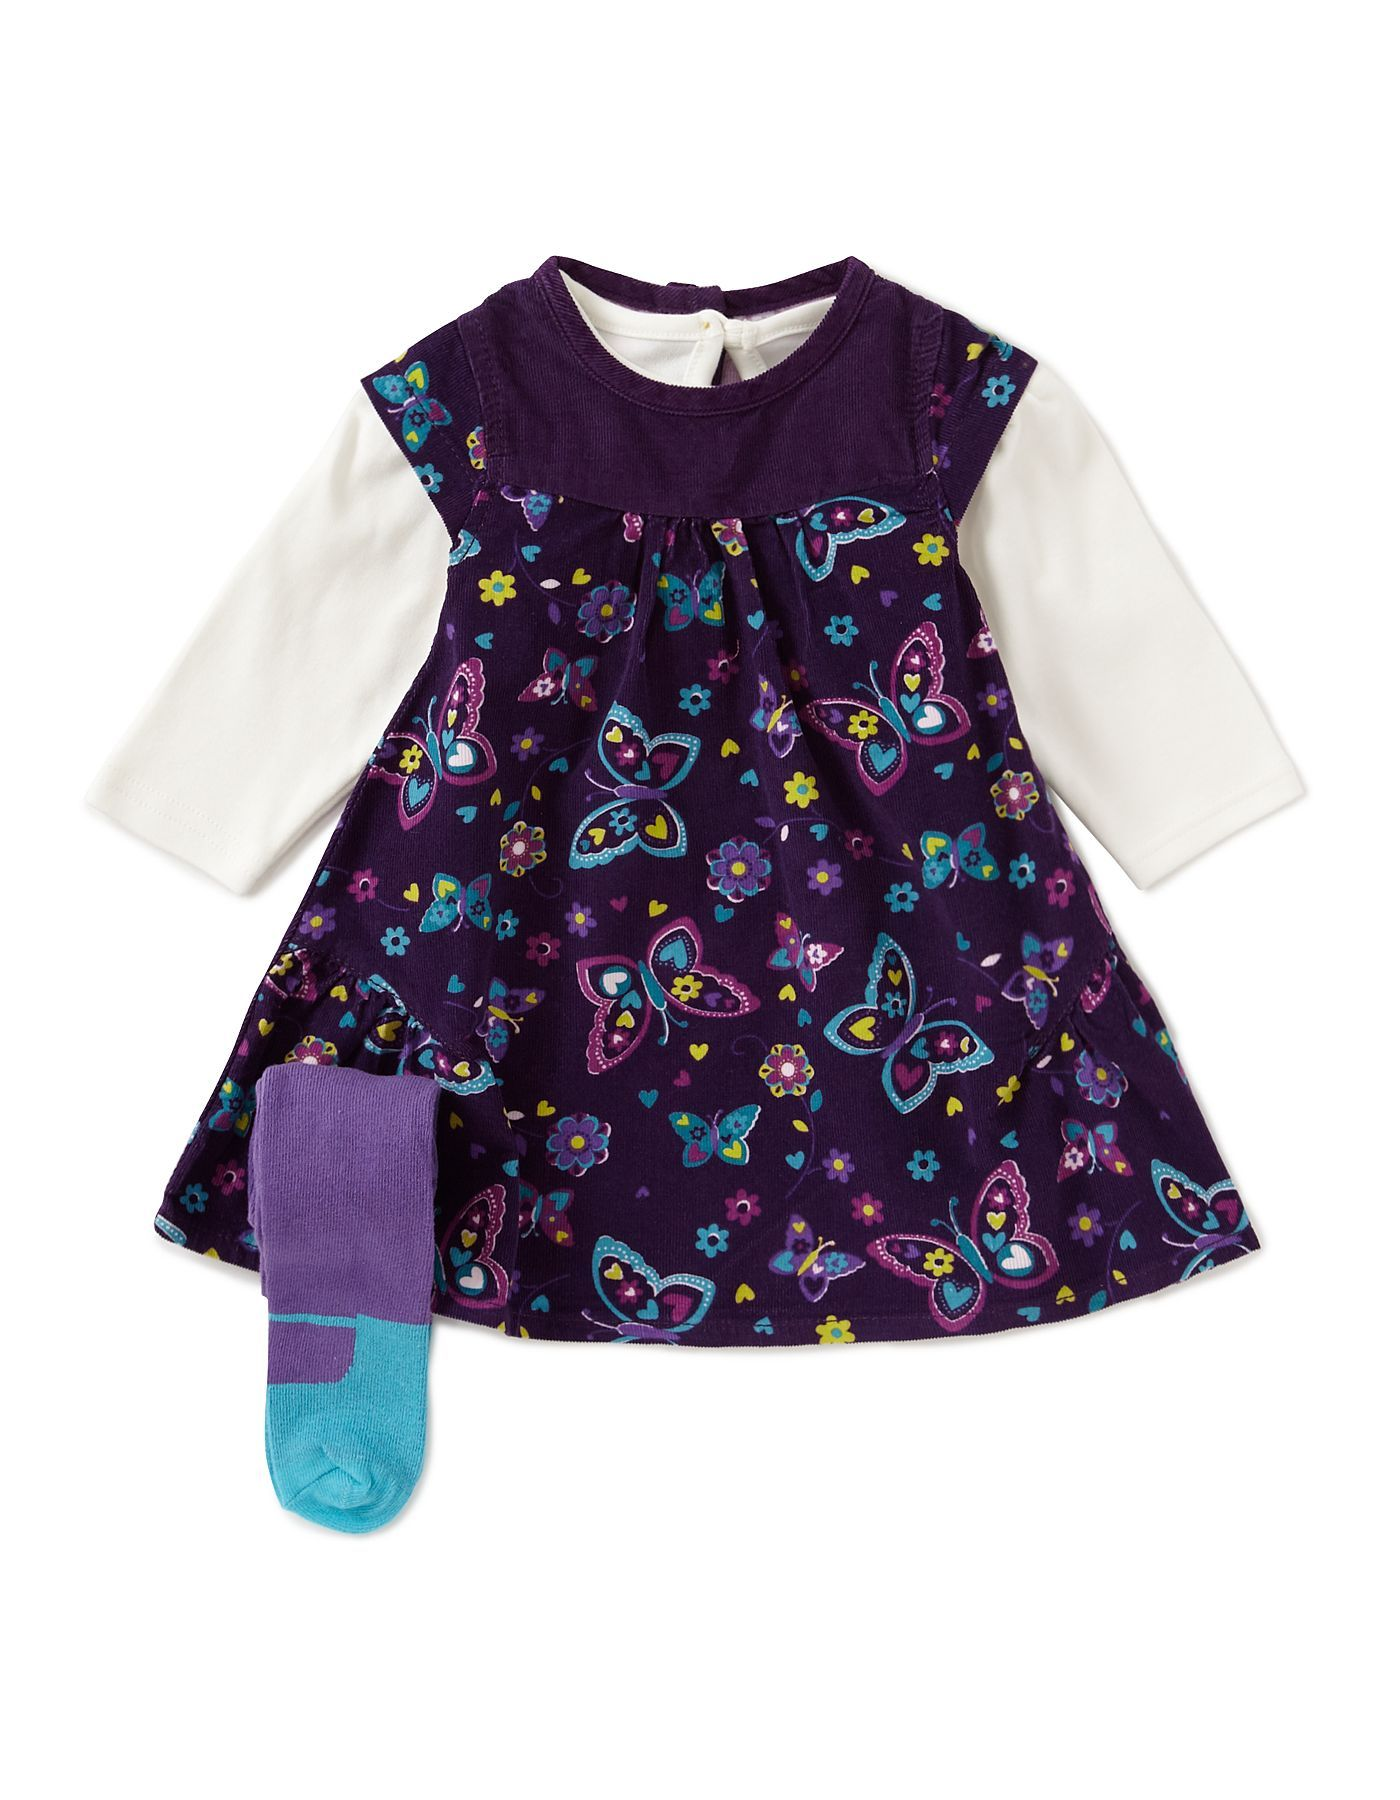 Butterfly Corduroy Dress Set Baby George at ASDA